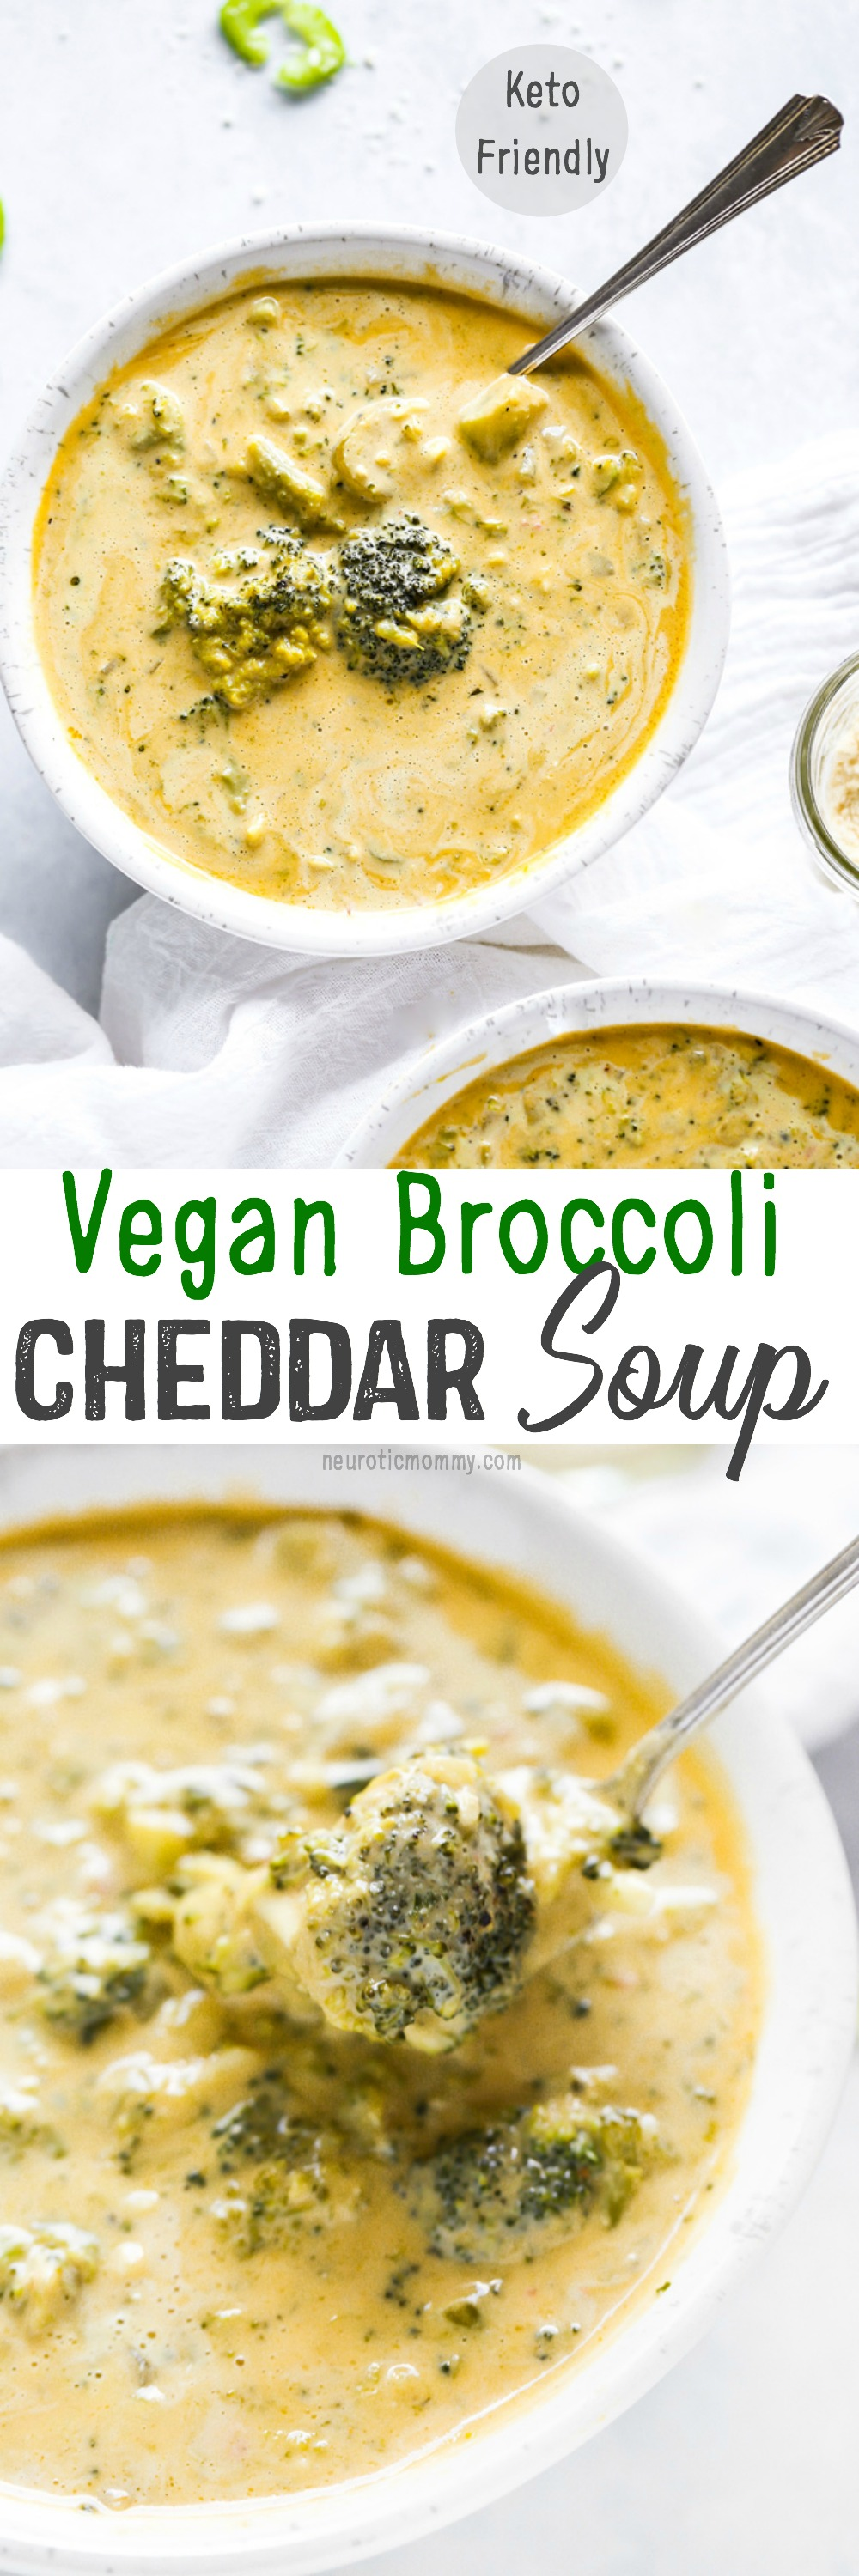 Vegan Broccoli Cheddar Soup - Cozy, warming and loaded with healing foods like broccoli, celery, and cashews. So creamy and full of cheddar flavor! NeuroticMommy.com #vegan #soup